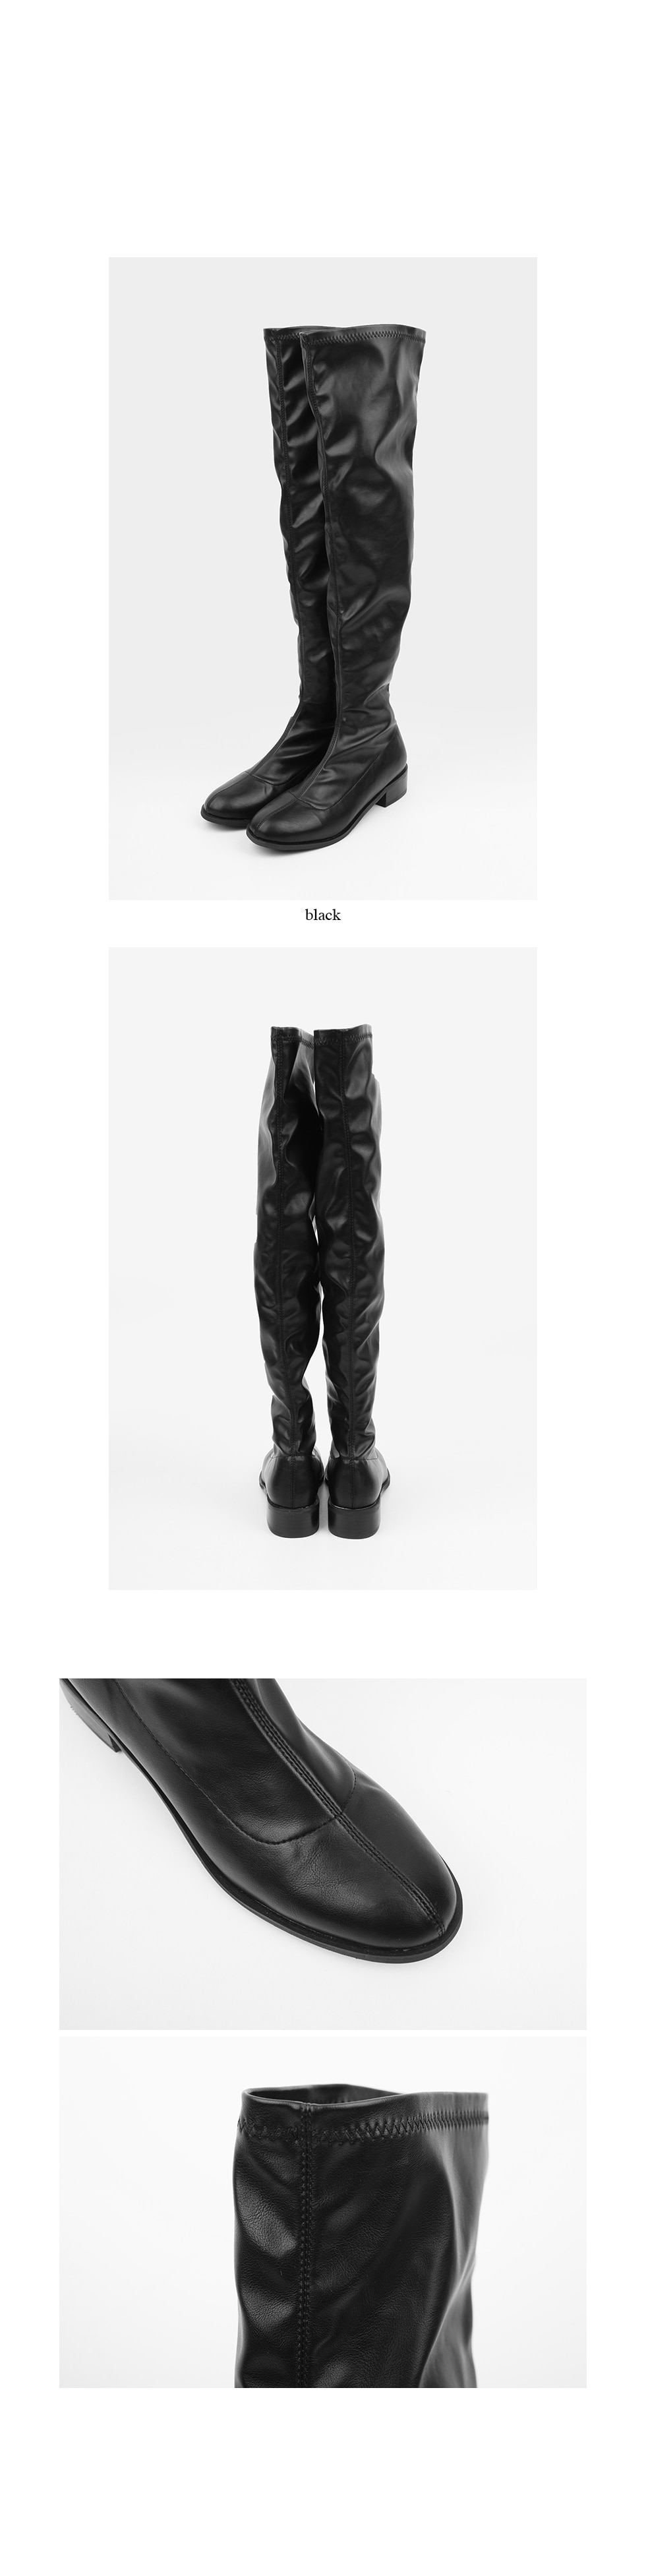 thigh-high vintage boots